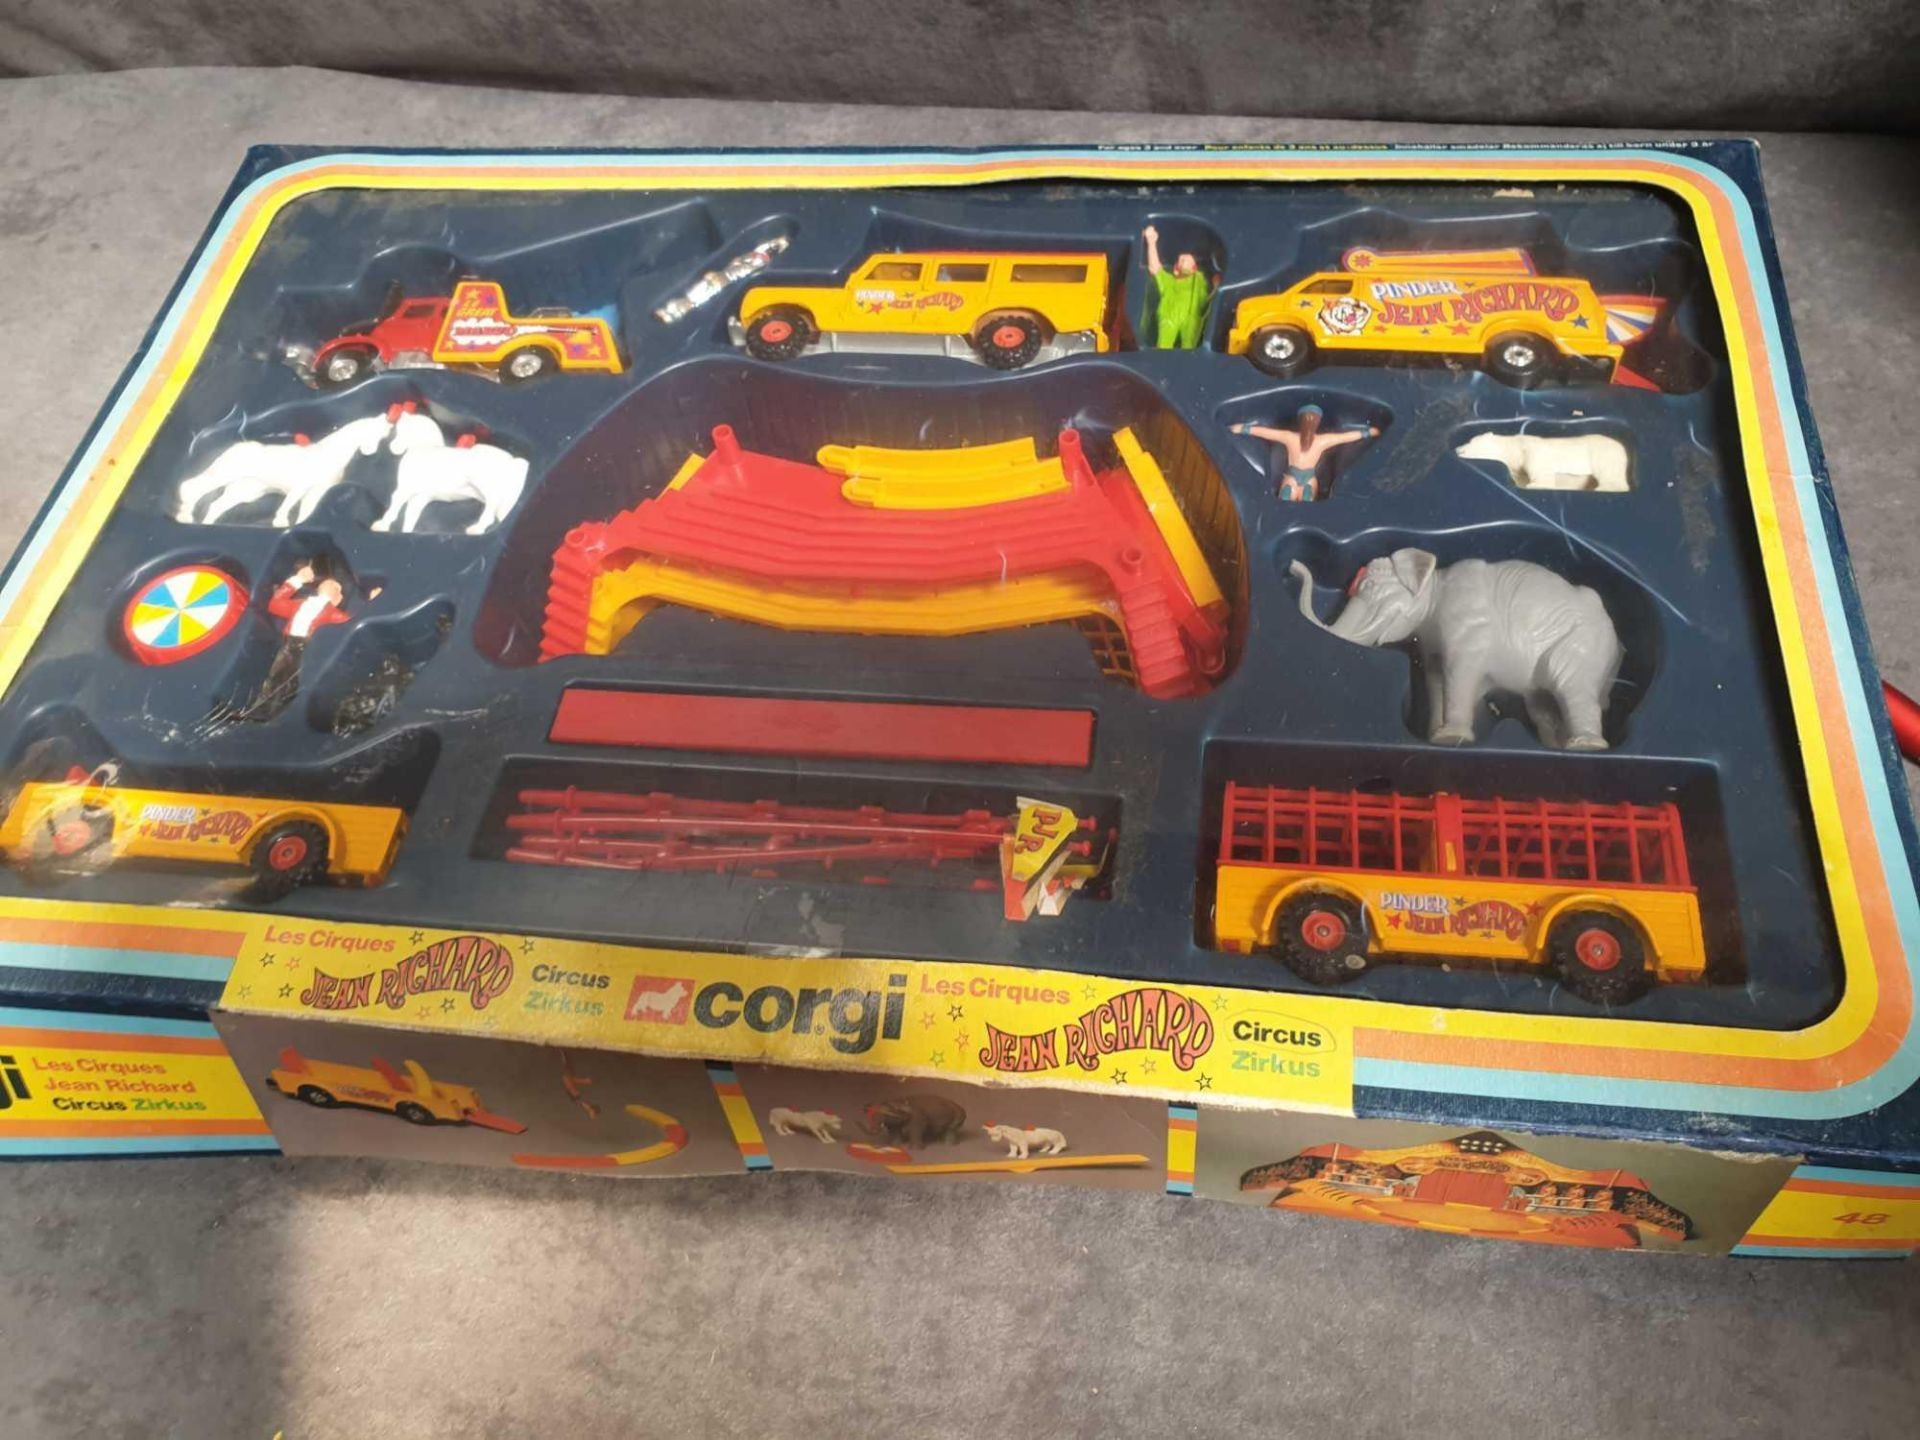 Excellent Corgi Diecast #48 Jean Richard Circus Gift Set Various Circus Vehicles And Accessories. - Image 3 of 3